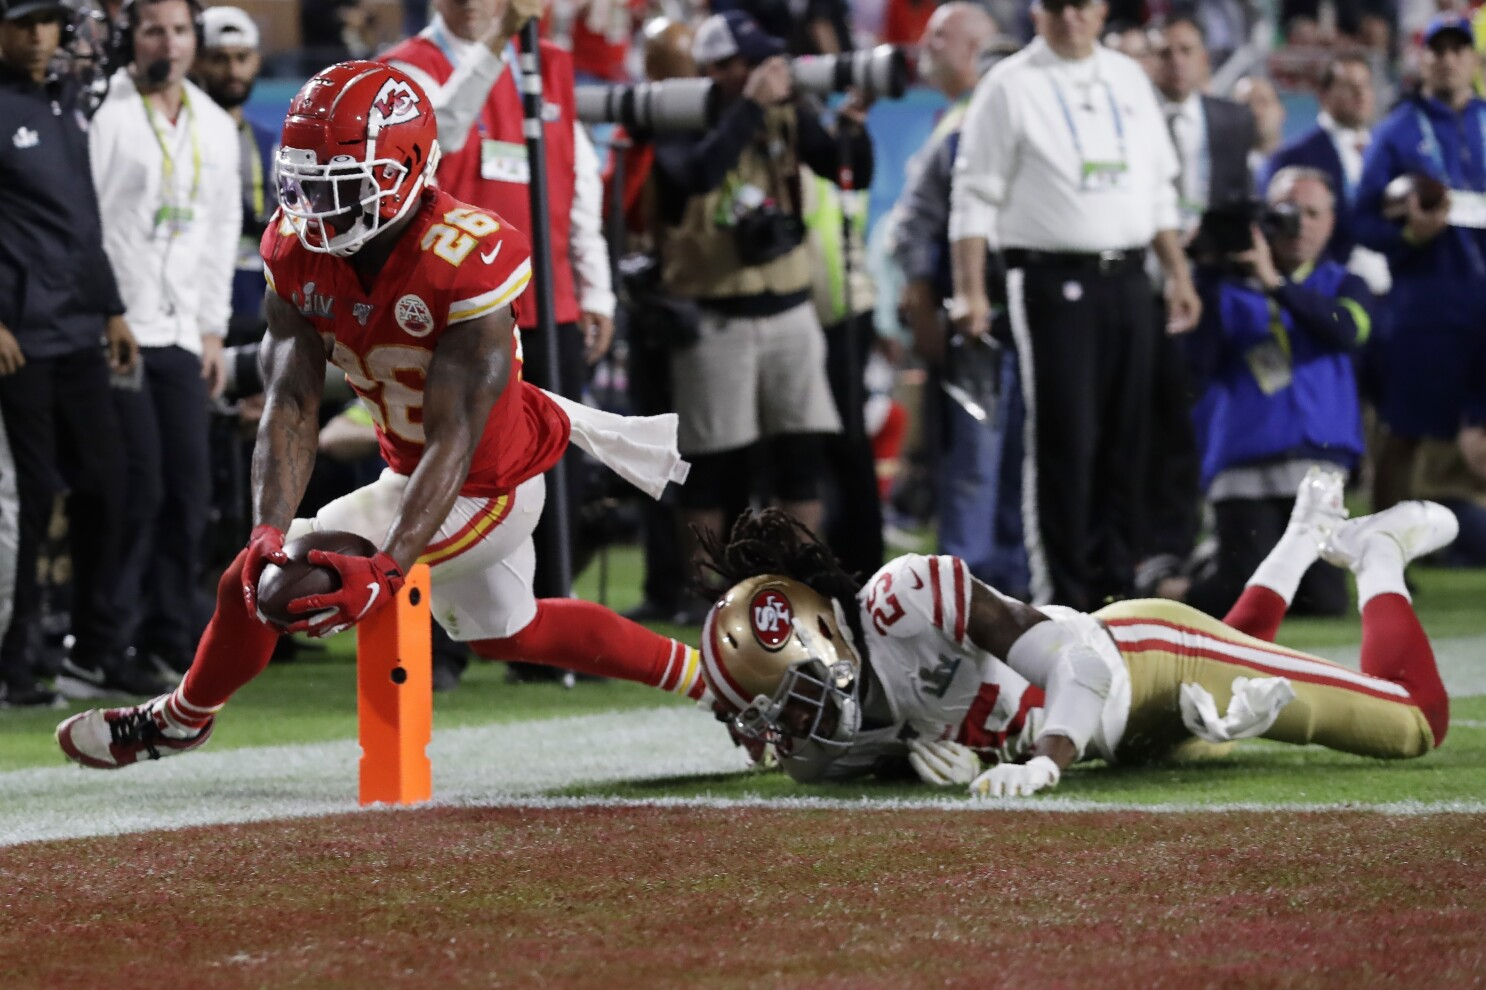 Damien Williams Helps Carry Chiefs To Super Bowl Win Over 49ers Los Angeles Times